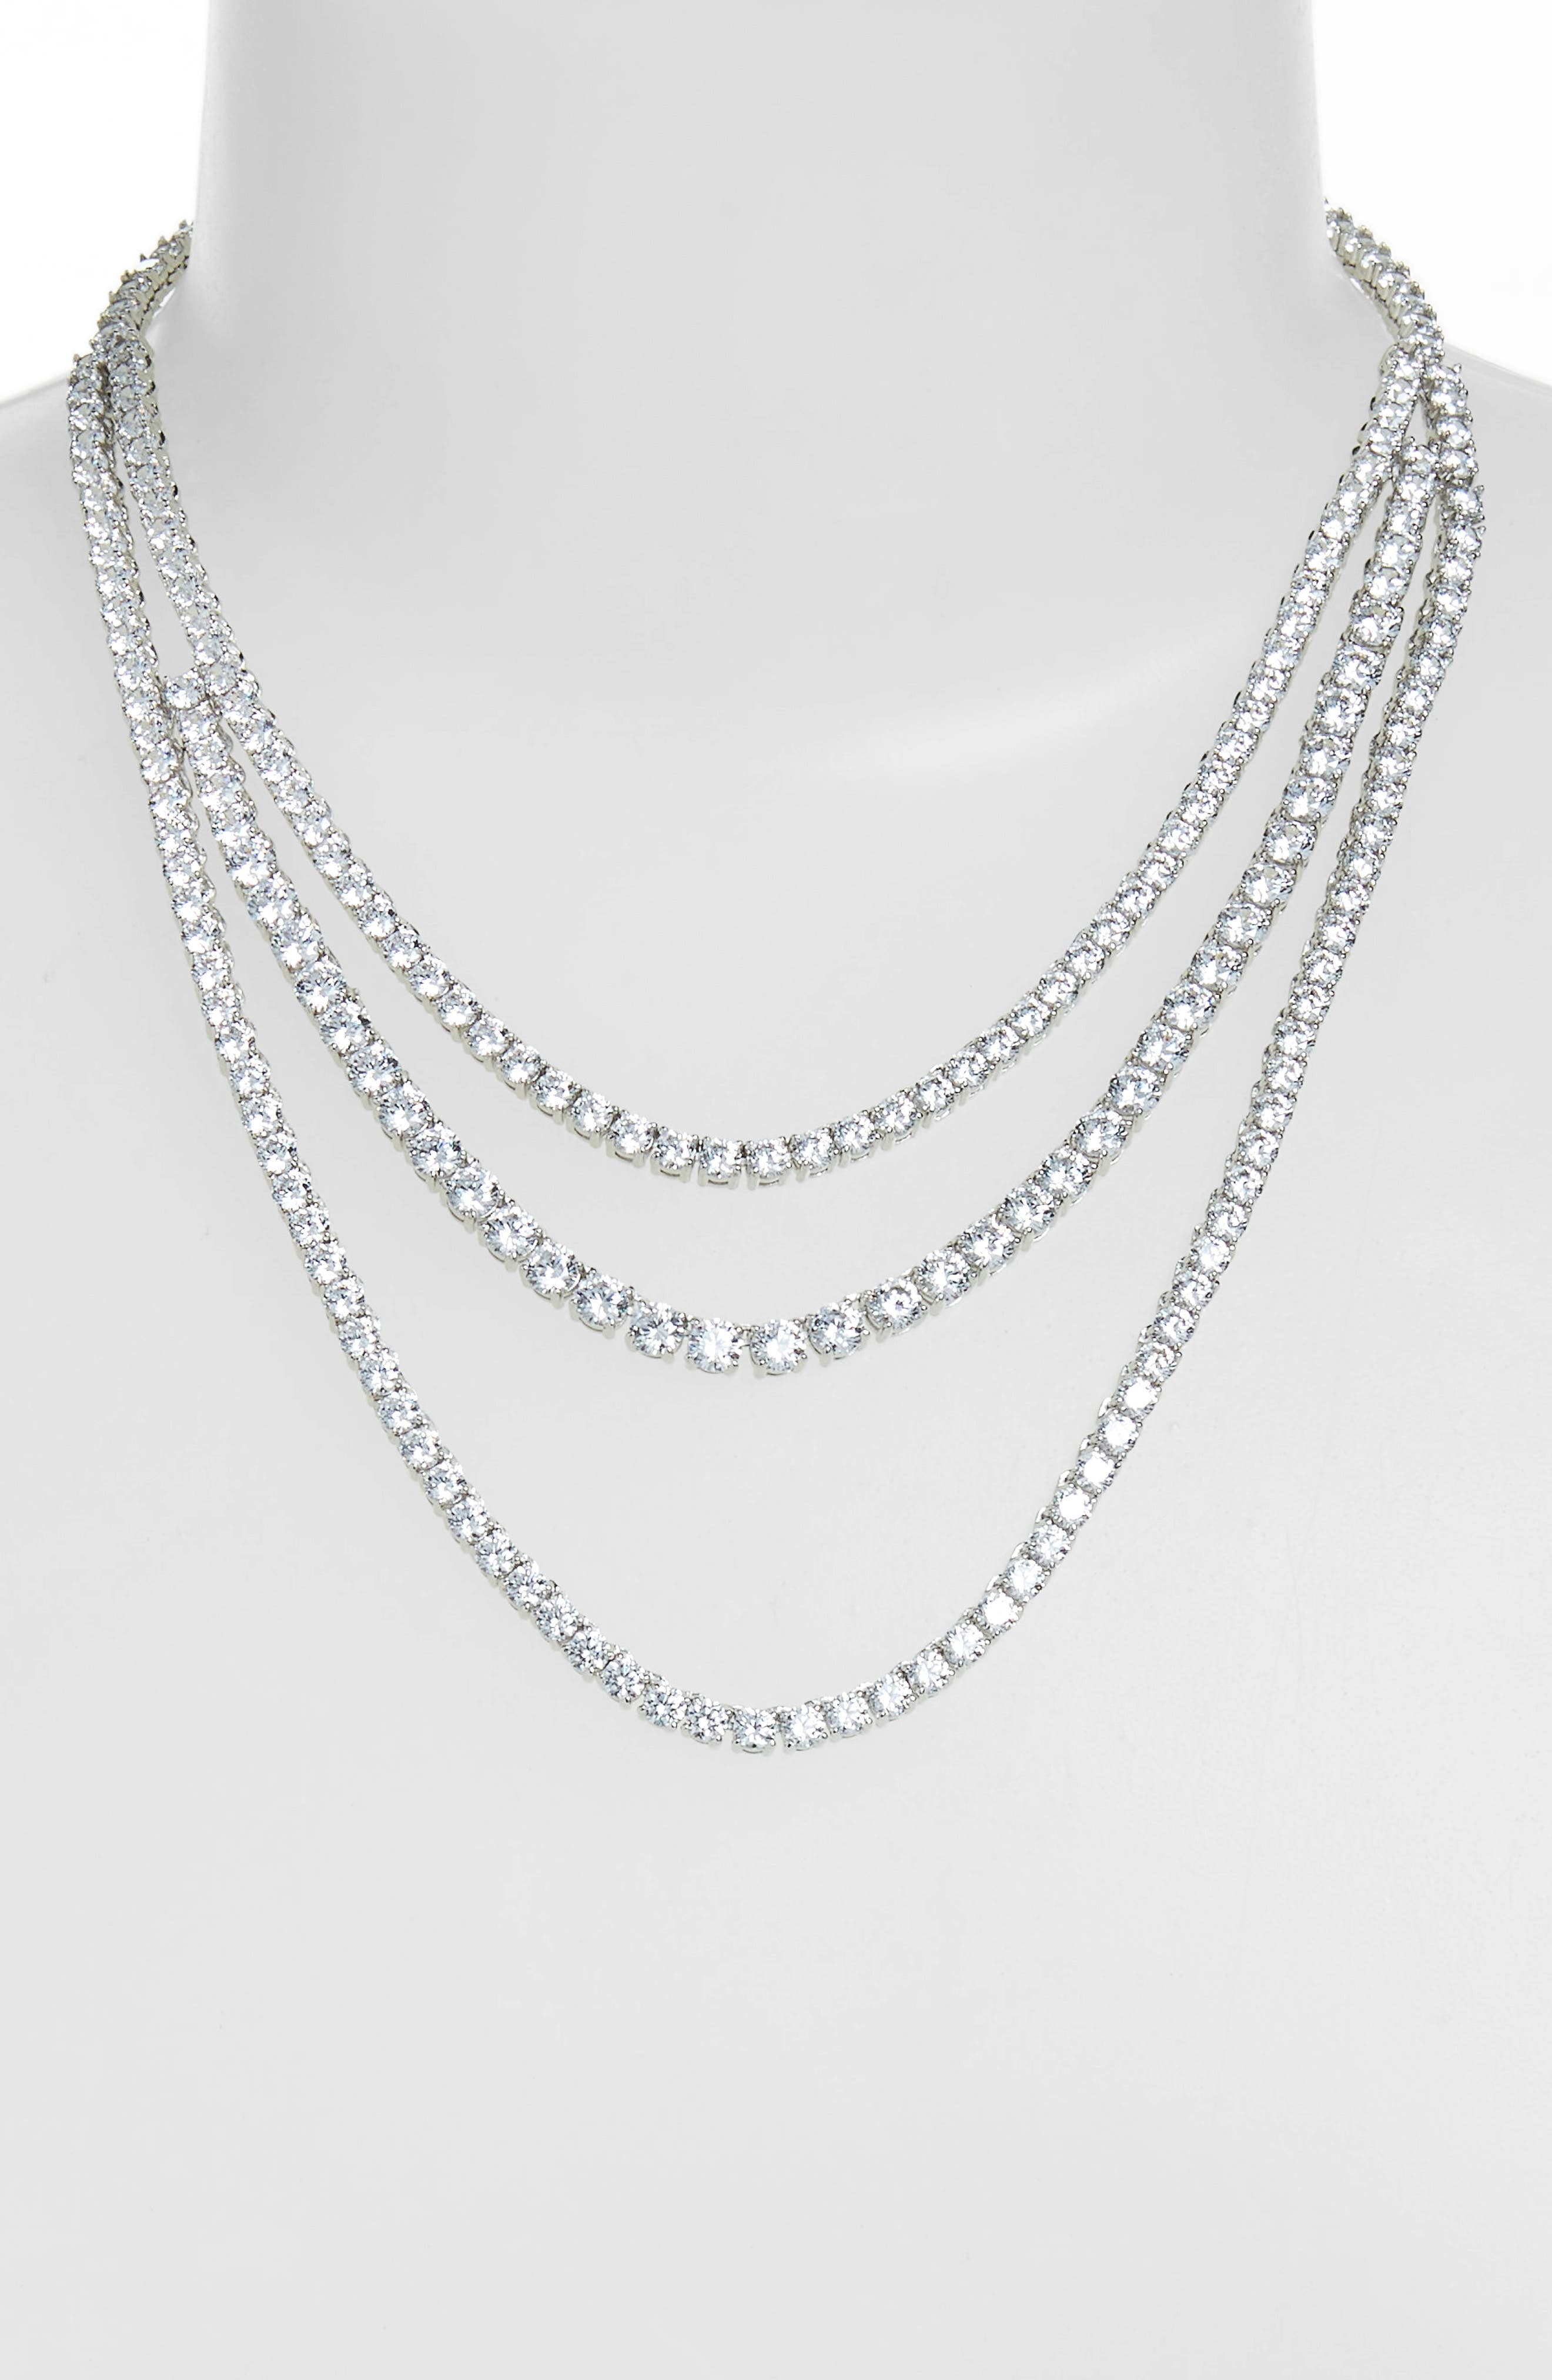 Triple Strand Tennis Necklace,                             Alternate thumbnail 2, color,                             CLEAR- SILVER